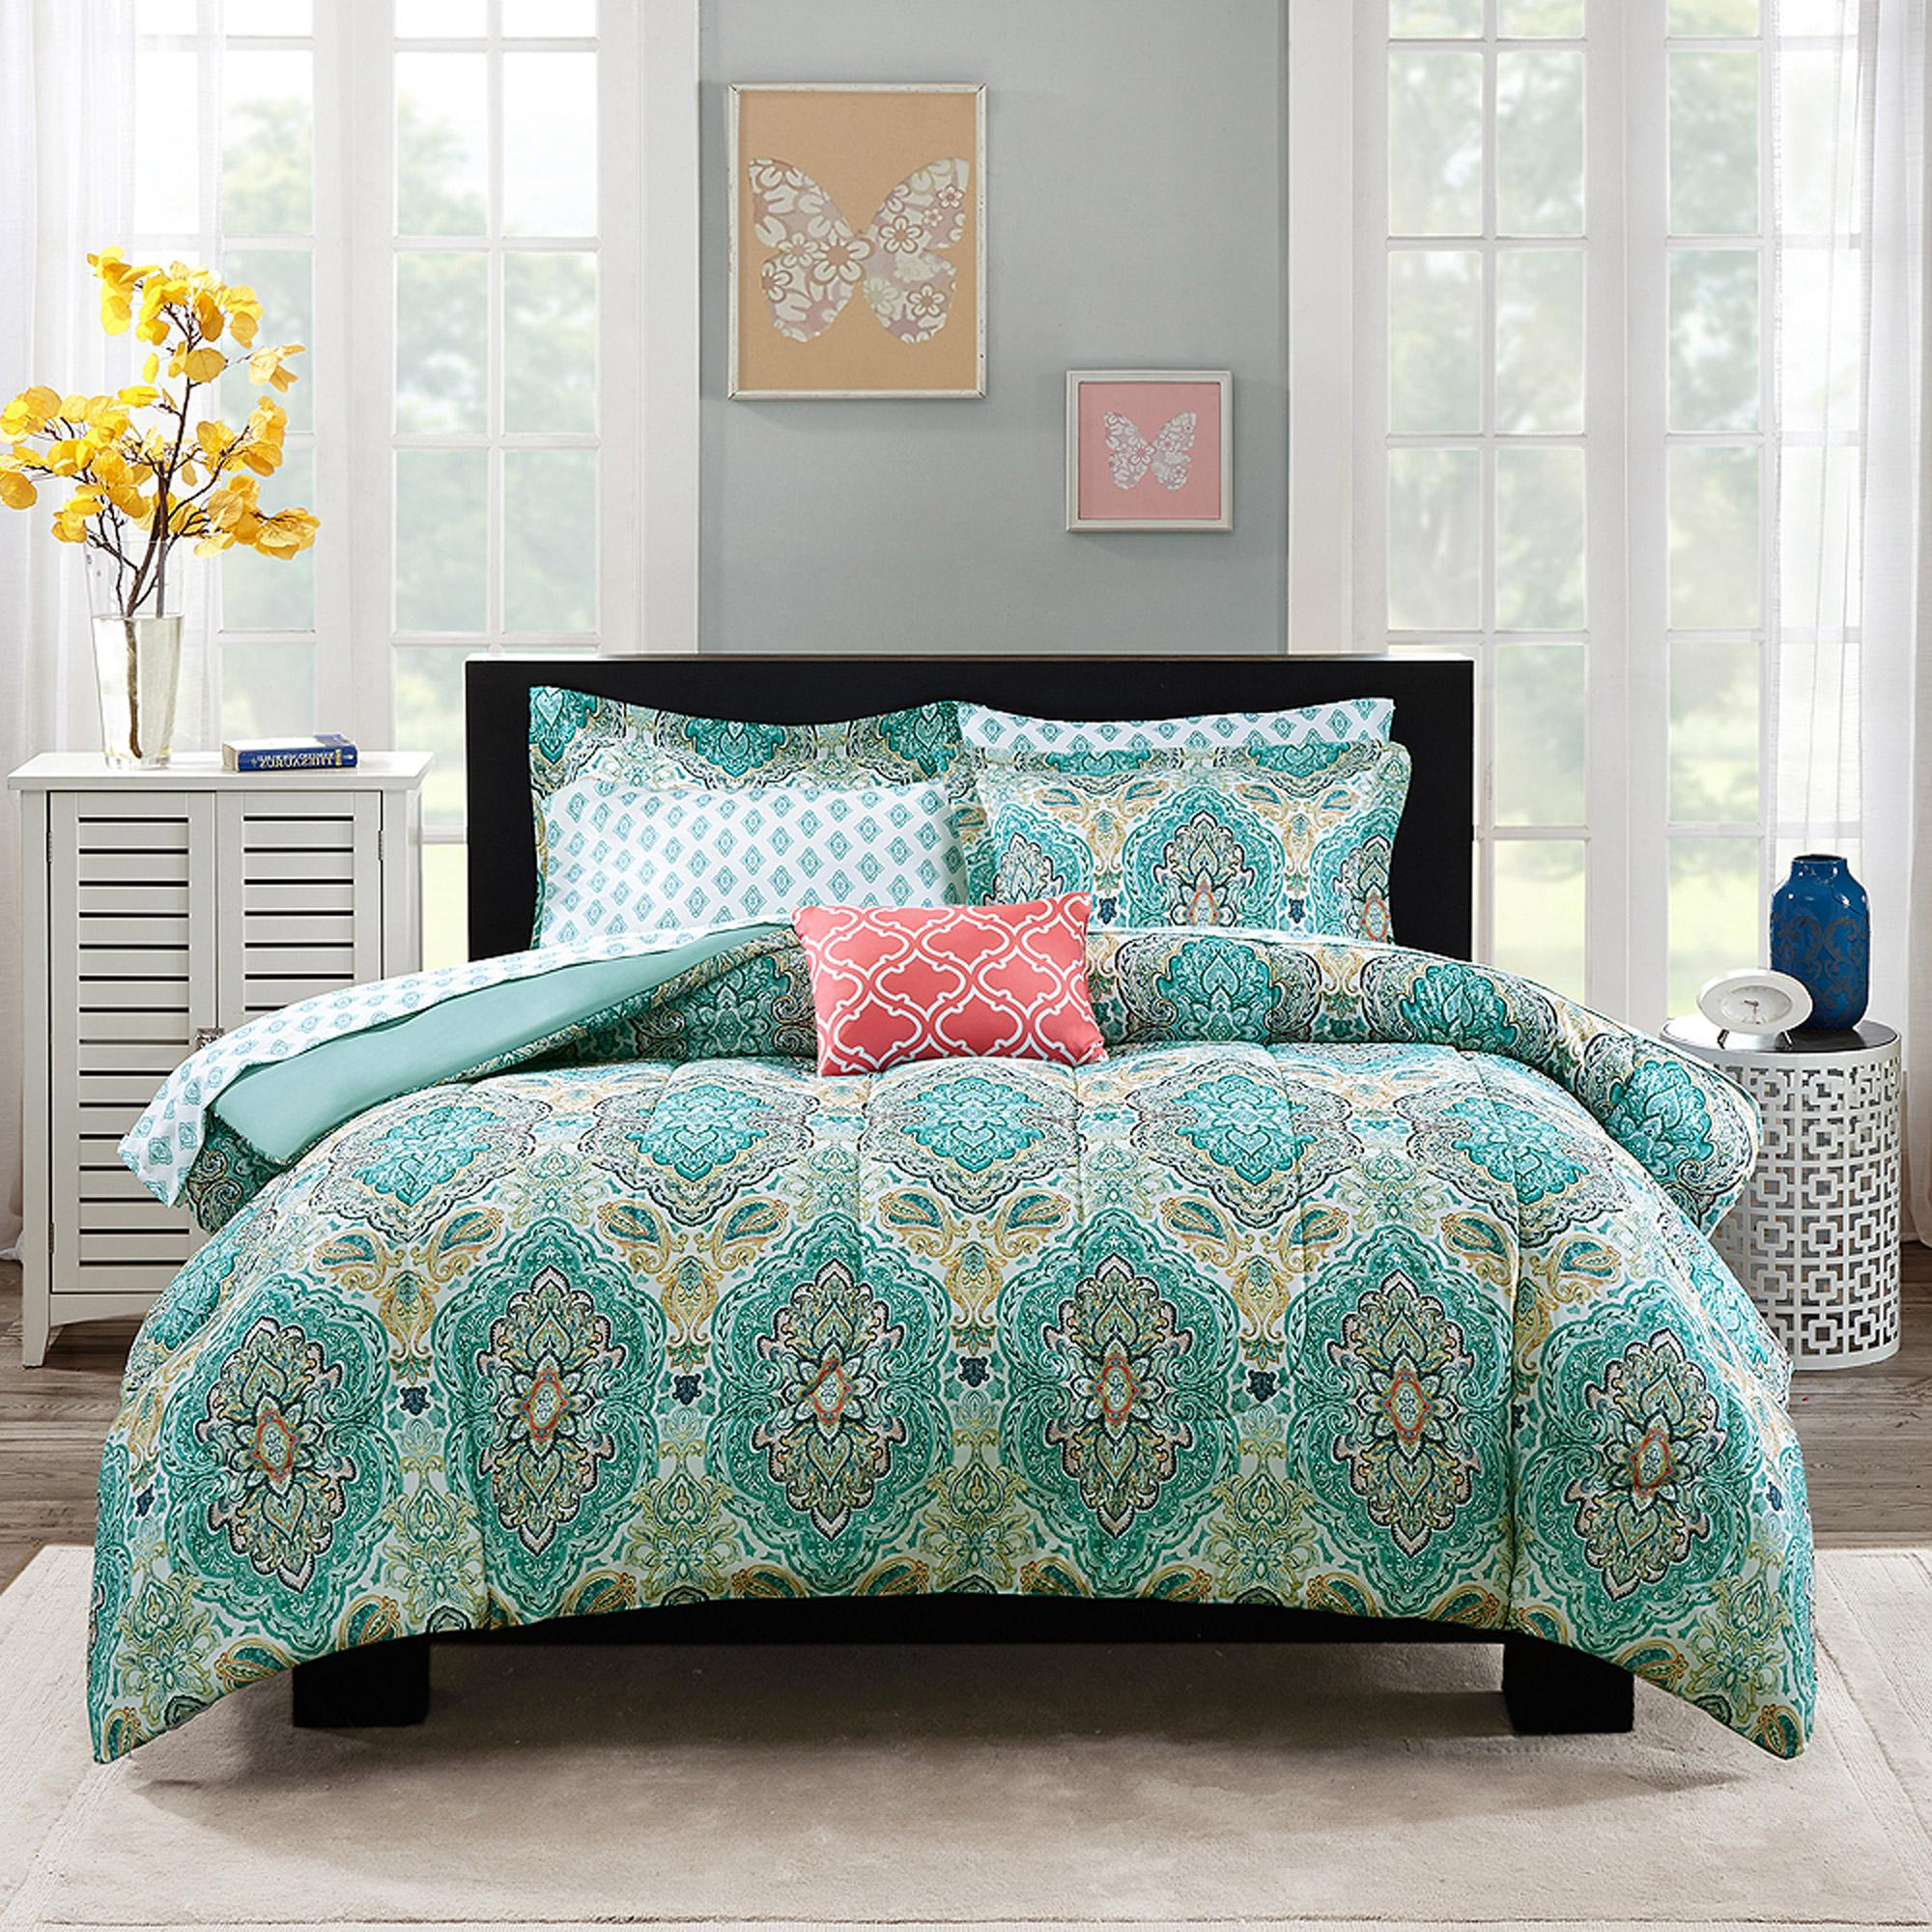 damask comforter damasks blue light pin duvet cover set paisley chaps